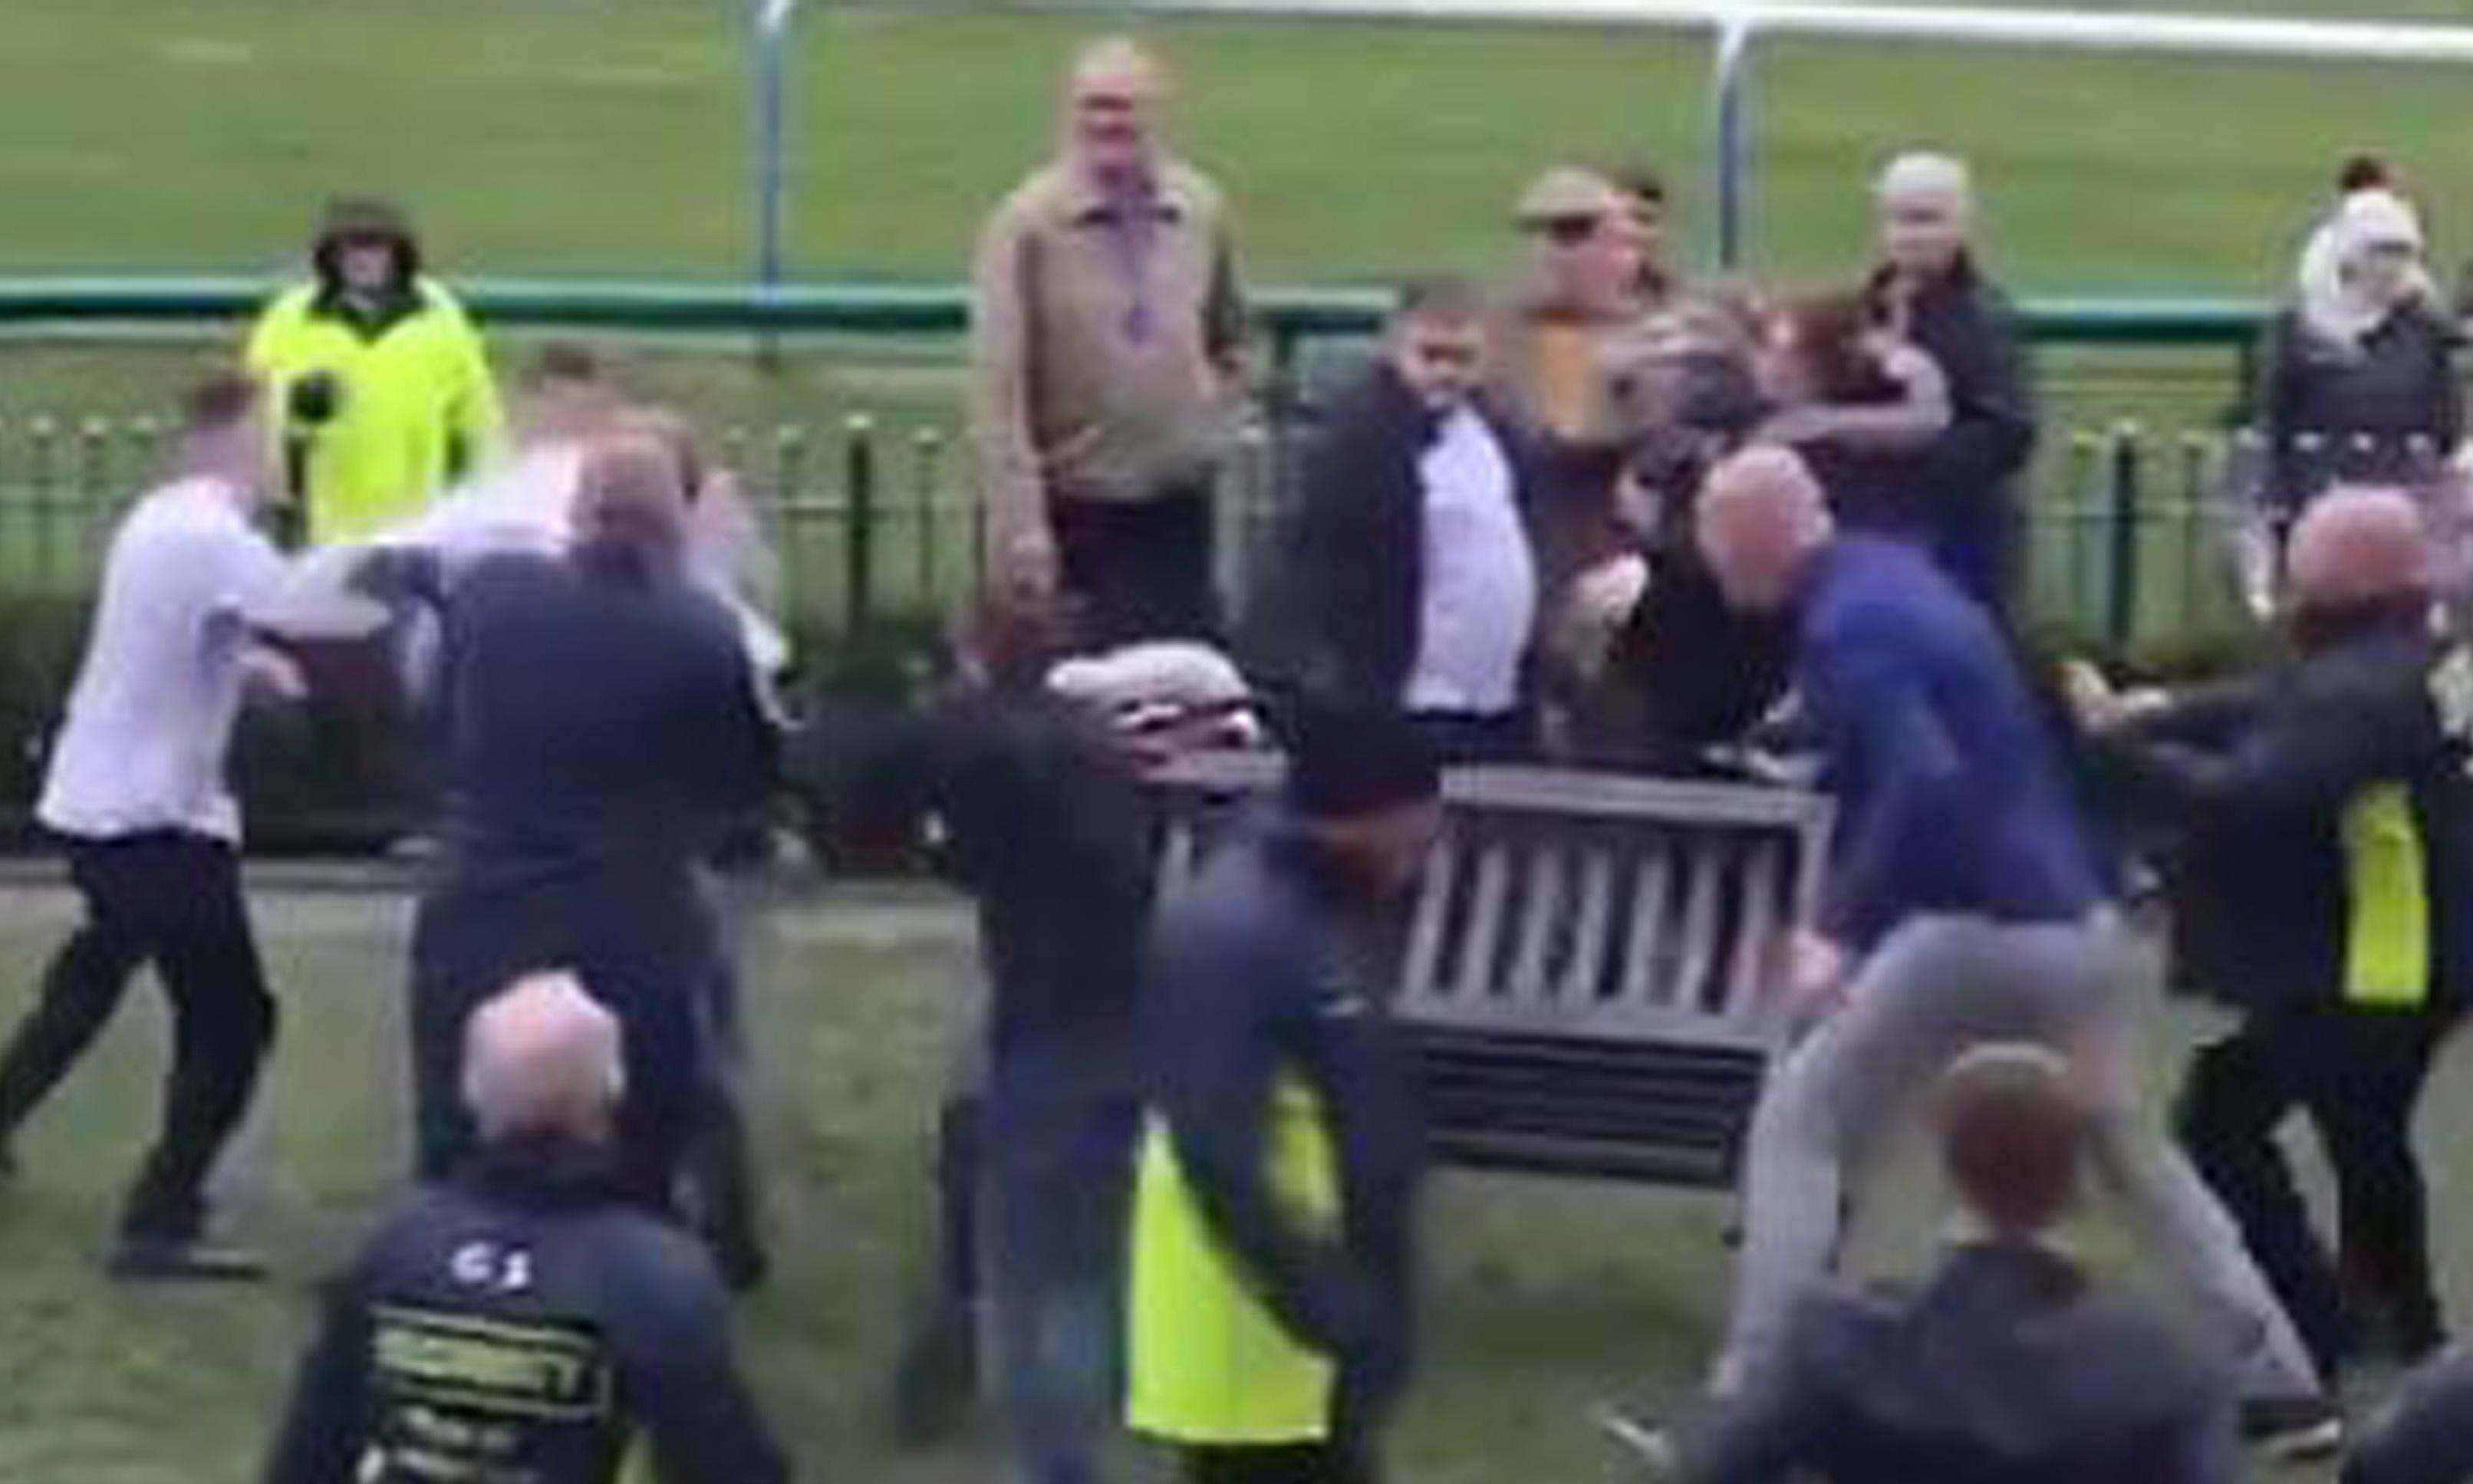 Bookmakers call for drugs clampdown to tackle racecourse brawls